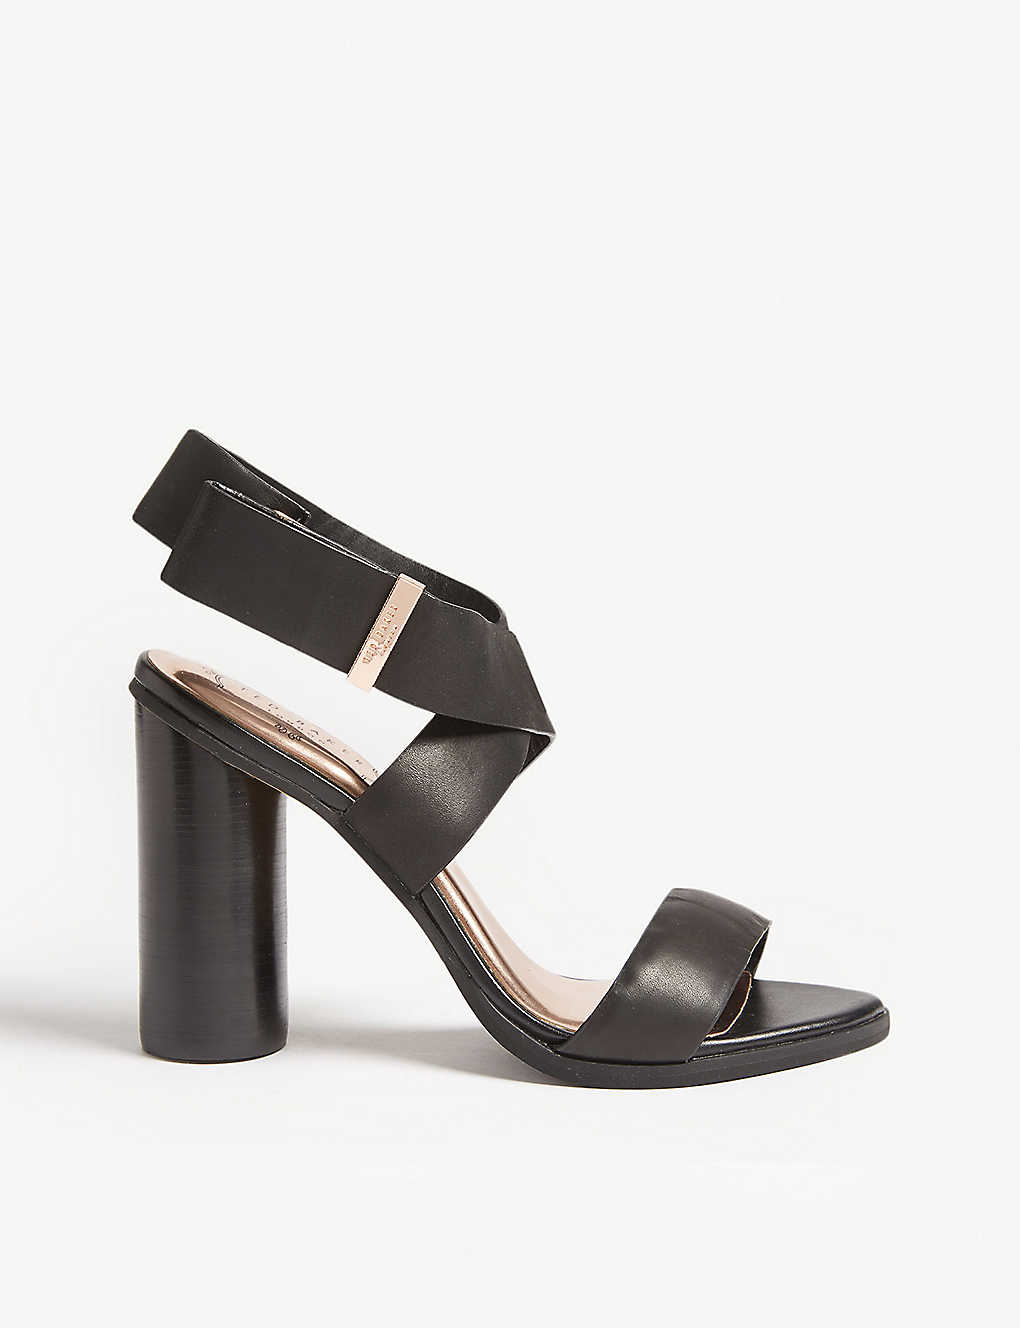 c87068986 TED BAKER - Meila leather strappy sandals